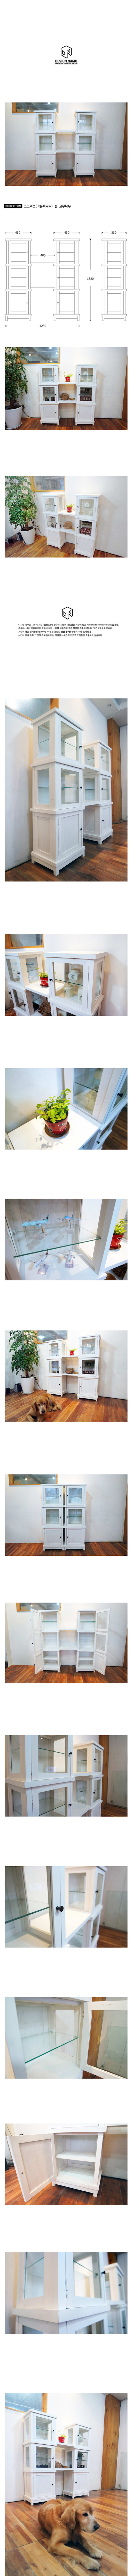 White glass cabinet set : Design-namu의 클래식 ,클래식